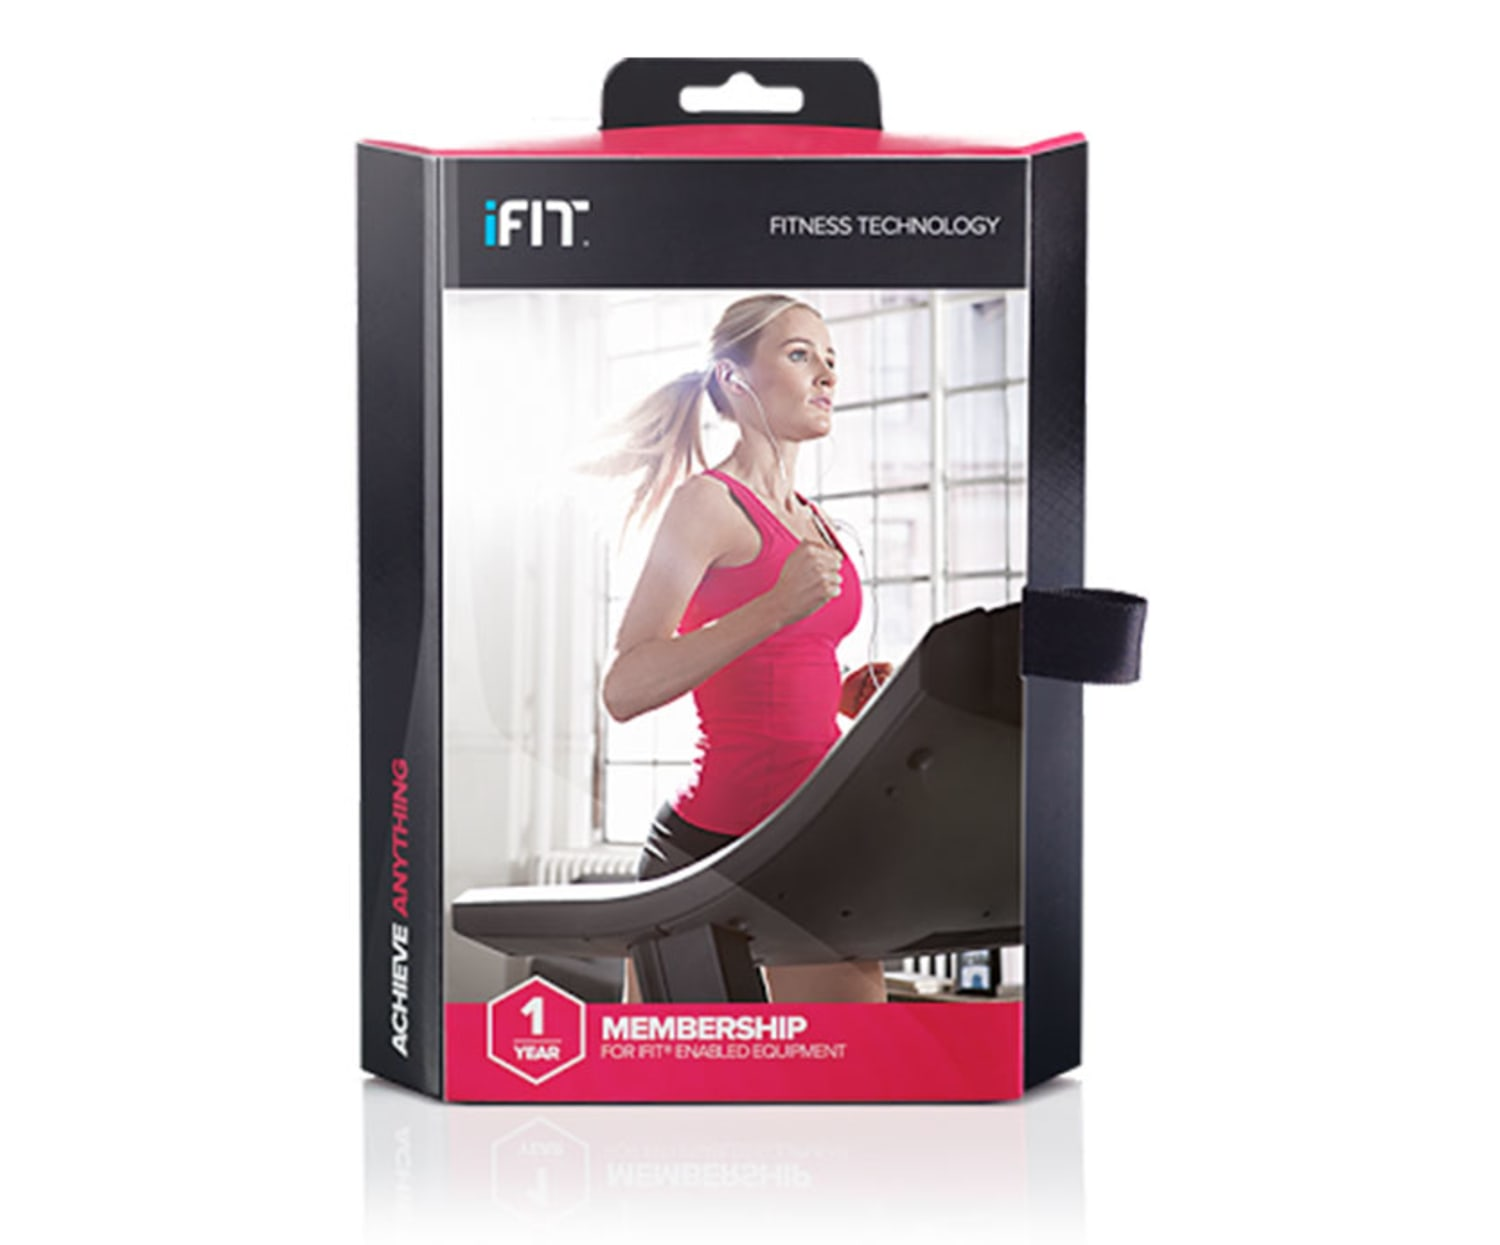 1-Year iFit® Subscription